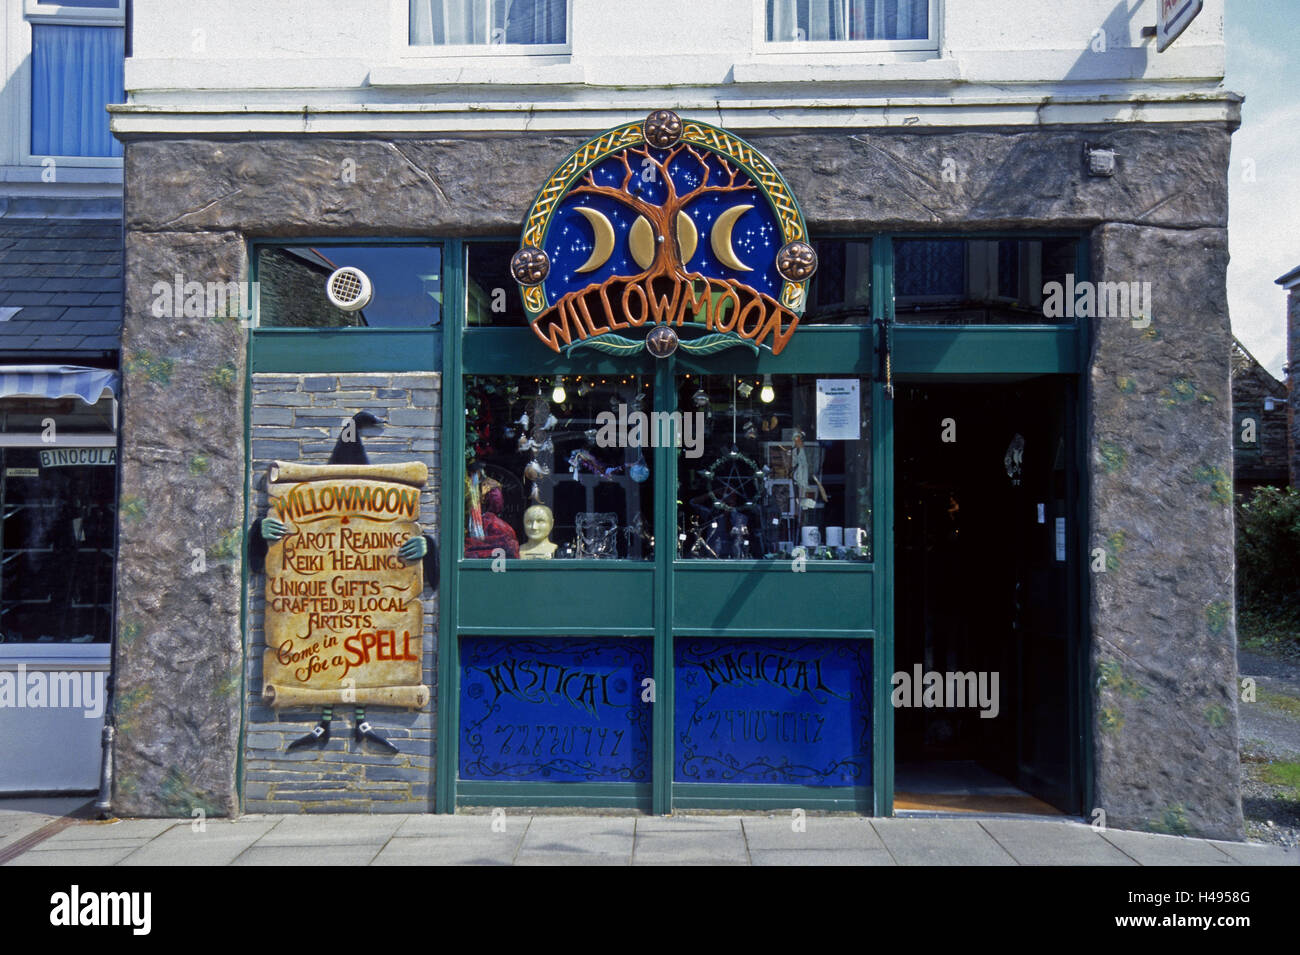 Souvenir business, outside, Tintagel, souvenir business, Great Britain, Cornwall, Willowmoon, witches, mysticism, - Stock Image